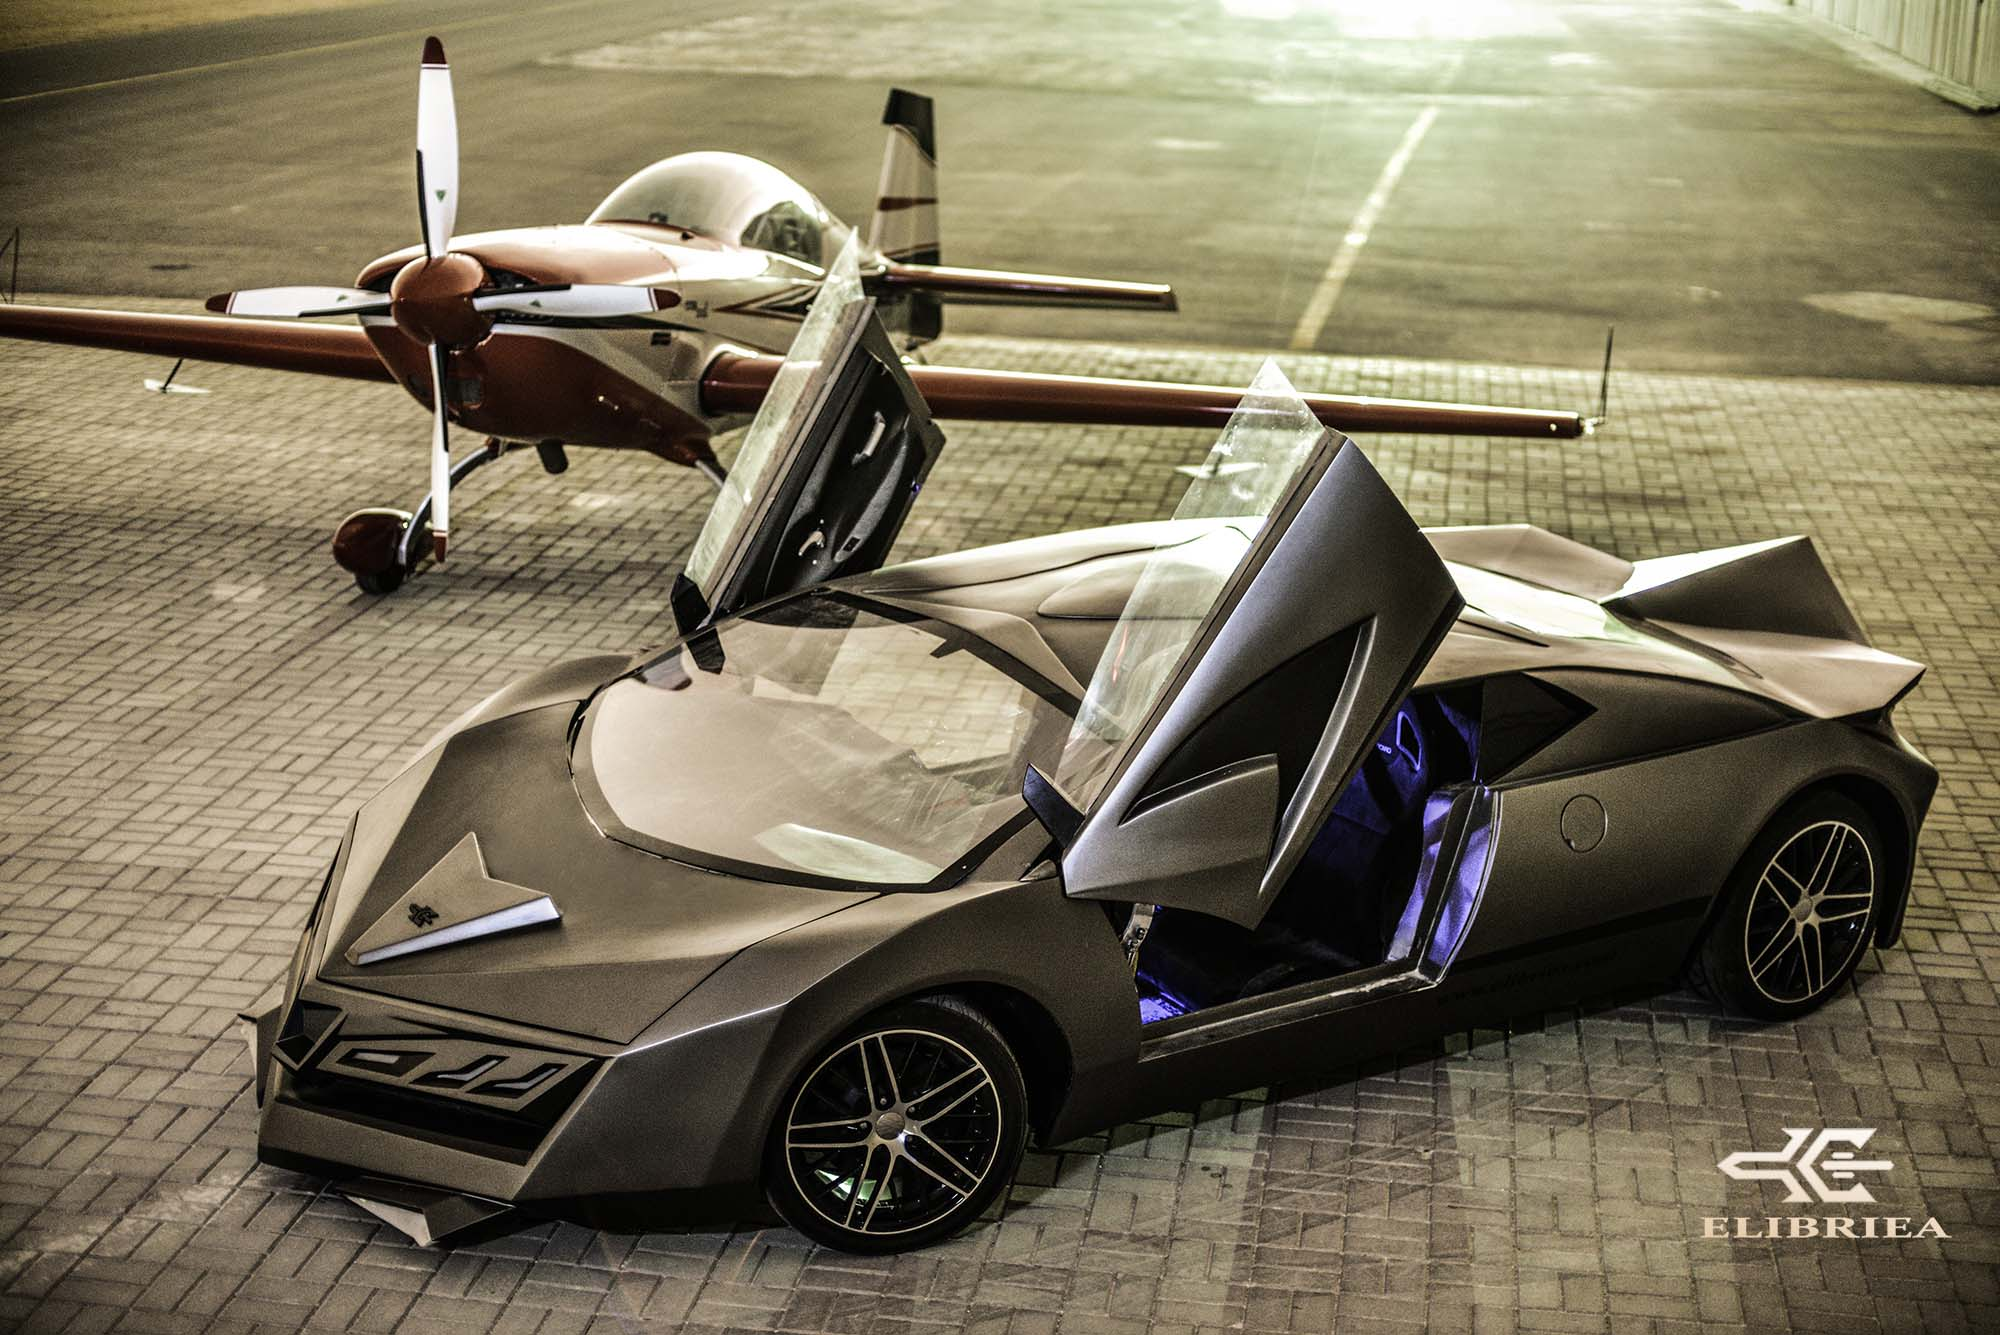 Qatar S First Concept Sports Car Unveiled At Motor Show